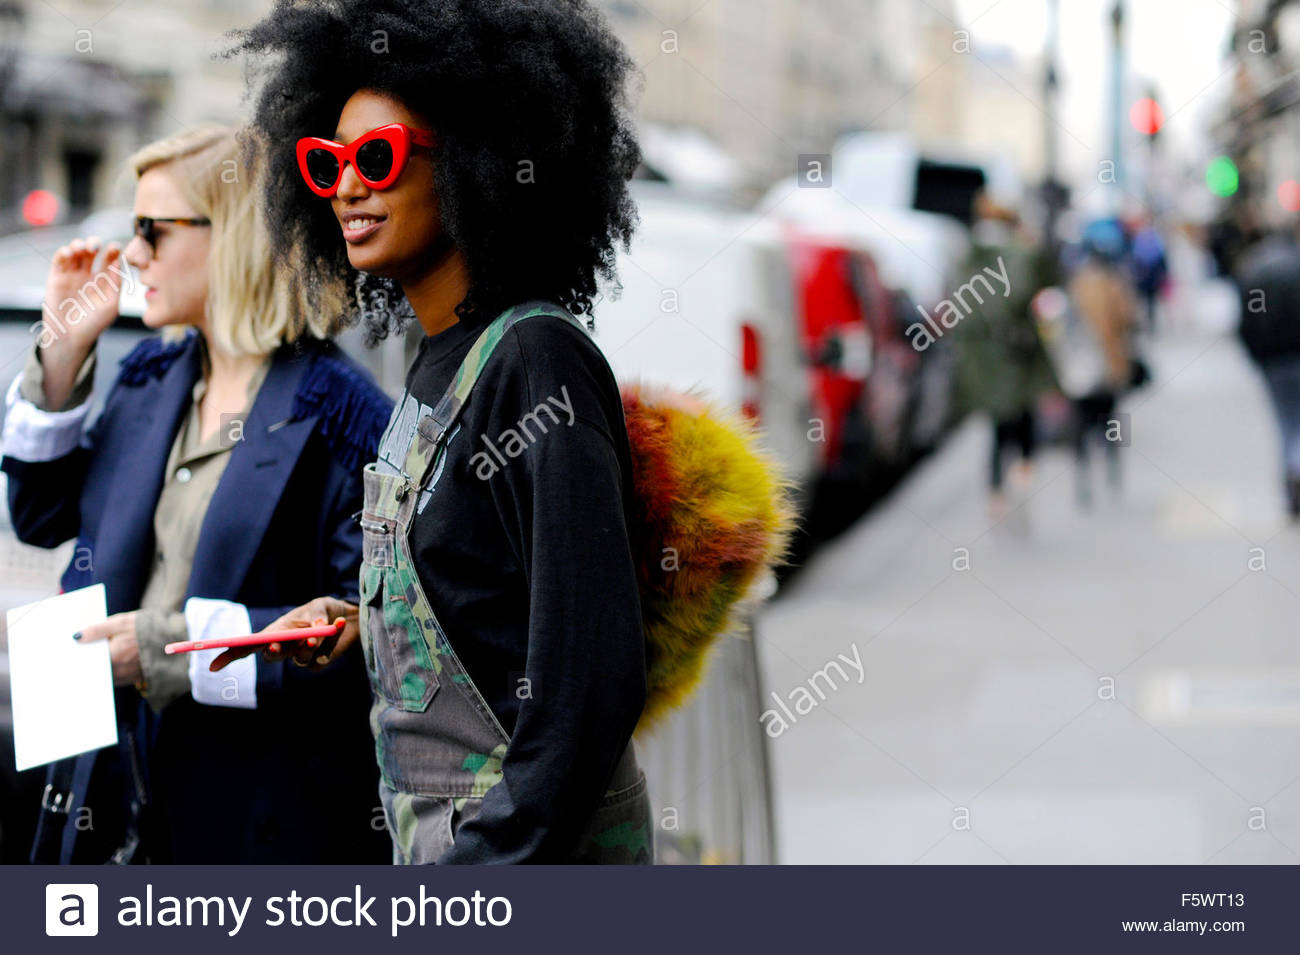 Julia Sarr-Jamois after Stella McCartney ready to wear fashion show Rue Scribe, Paris Fashion Week 2015. - Stock Image